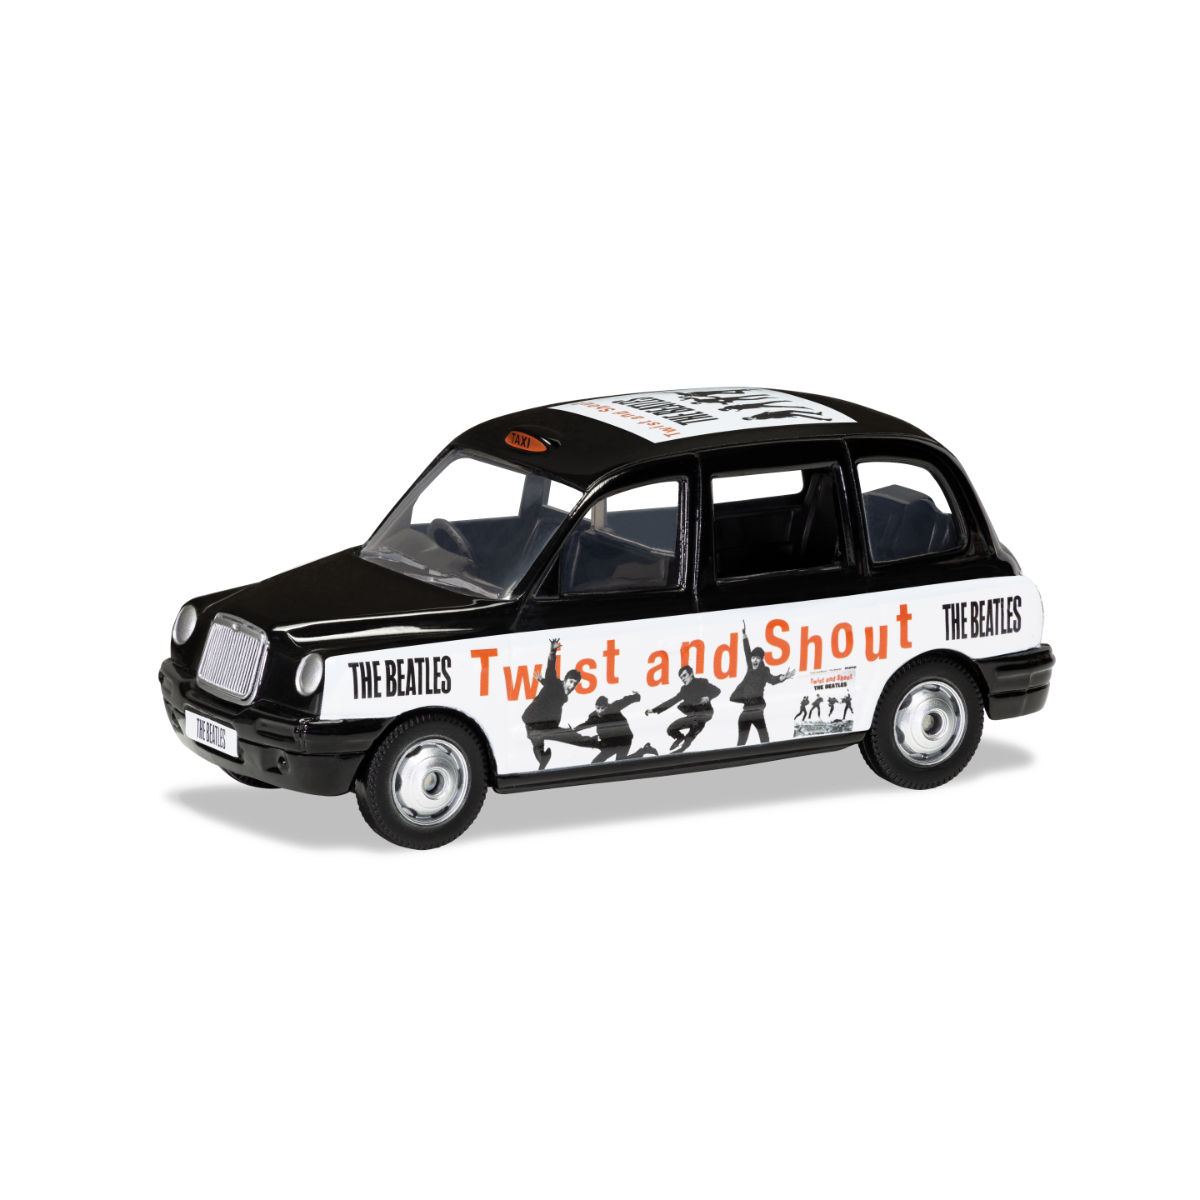 Hornby Twist and Shout London Taxi